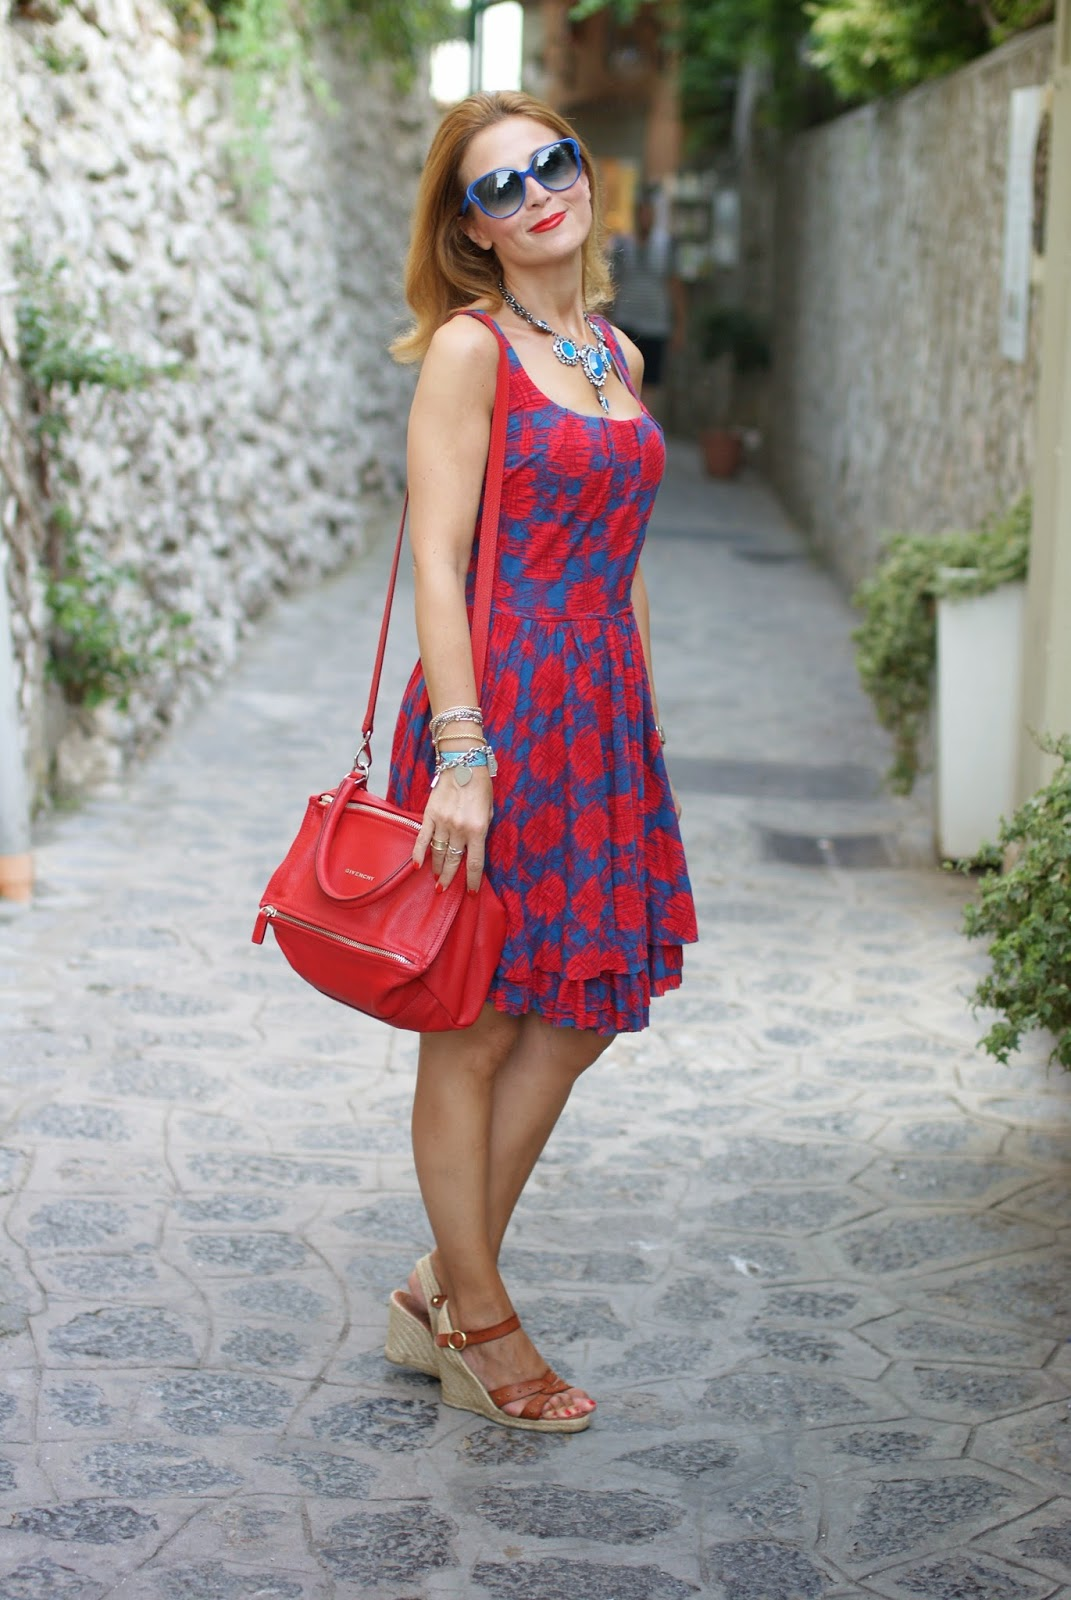 Marc by Marc Jacobs dress, Givenchy Pandora red, Fashion and Cookies, fashion blogger, Villa Cimbrone pics